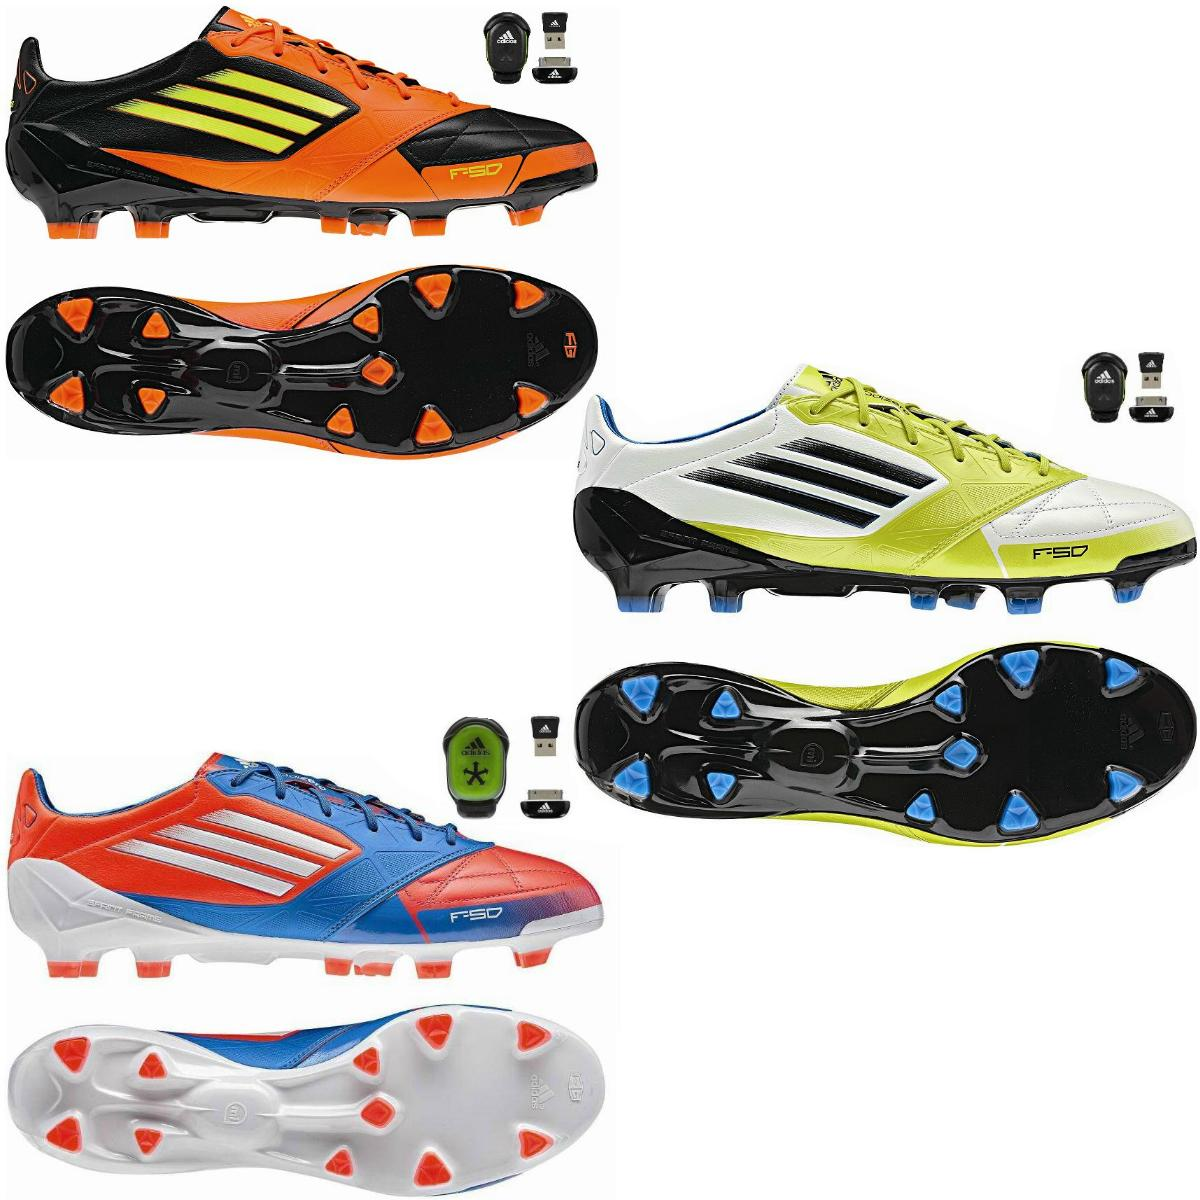 adidas f50 adizero trx fg leder rot micoach helvetiq. Black Bedroom Furniture Sets. Home Design Ideas